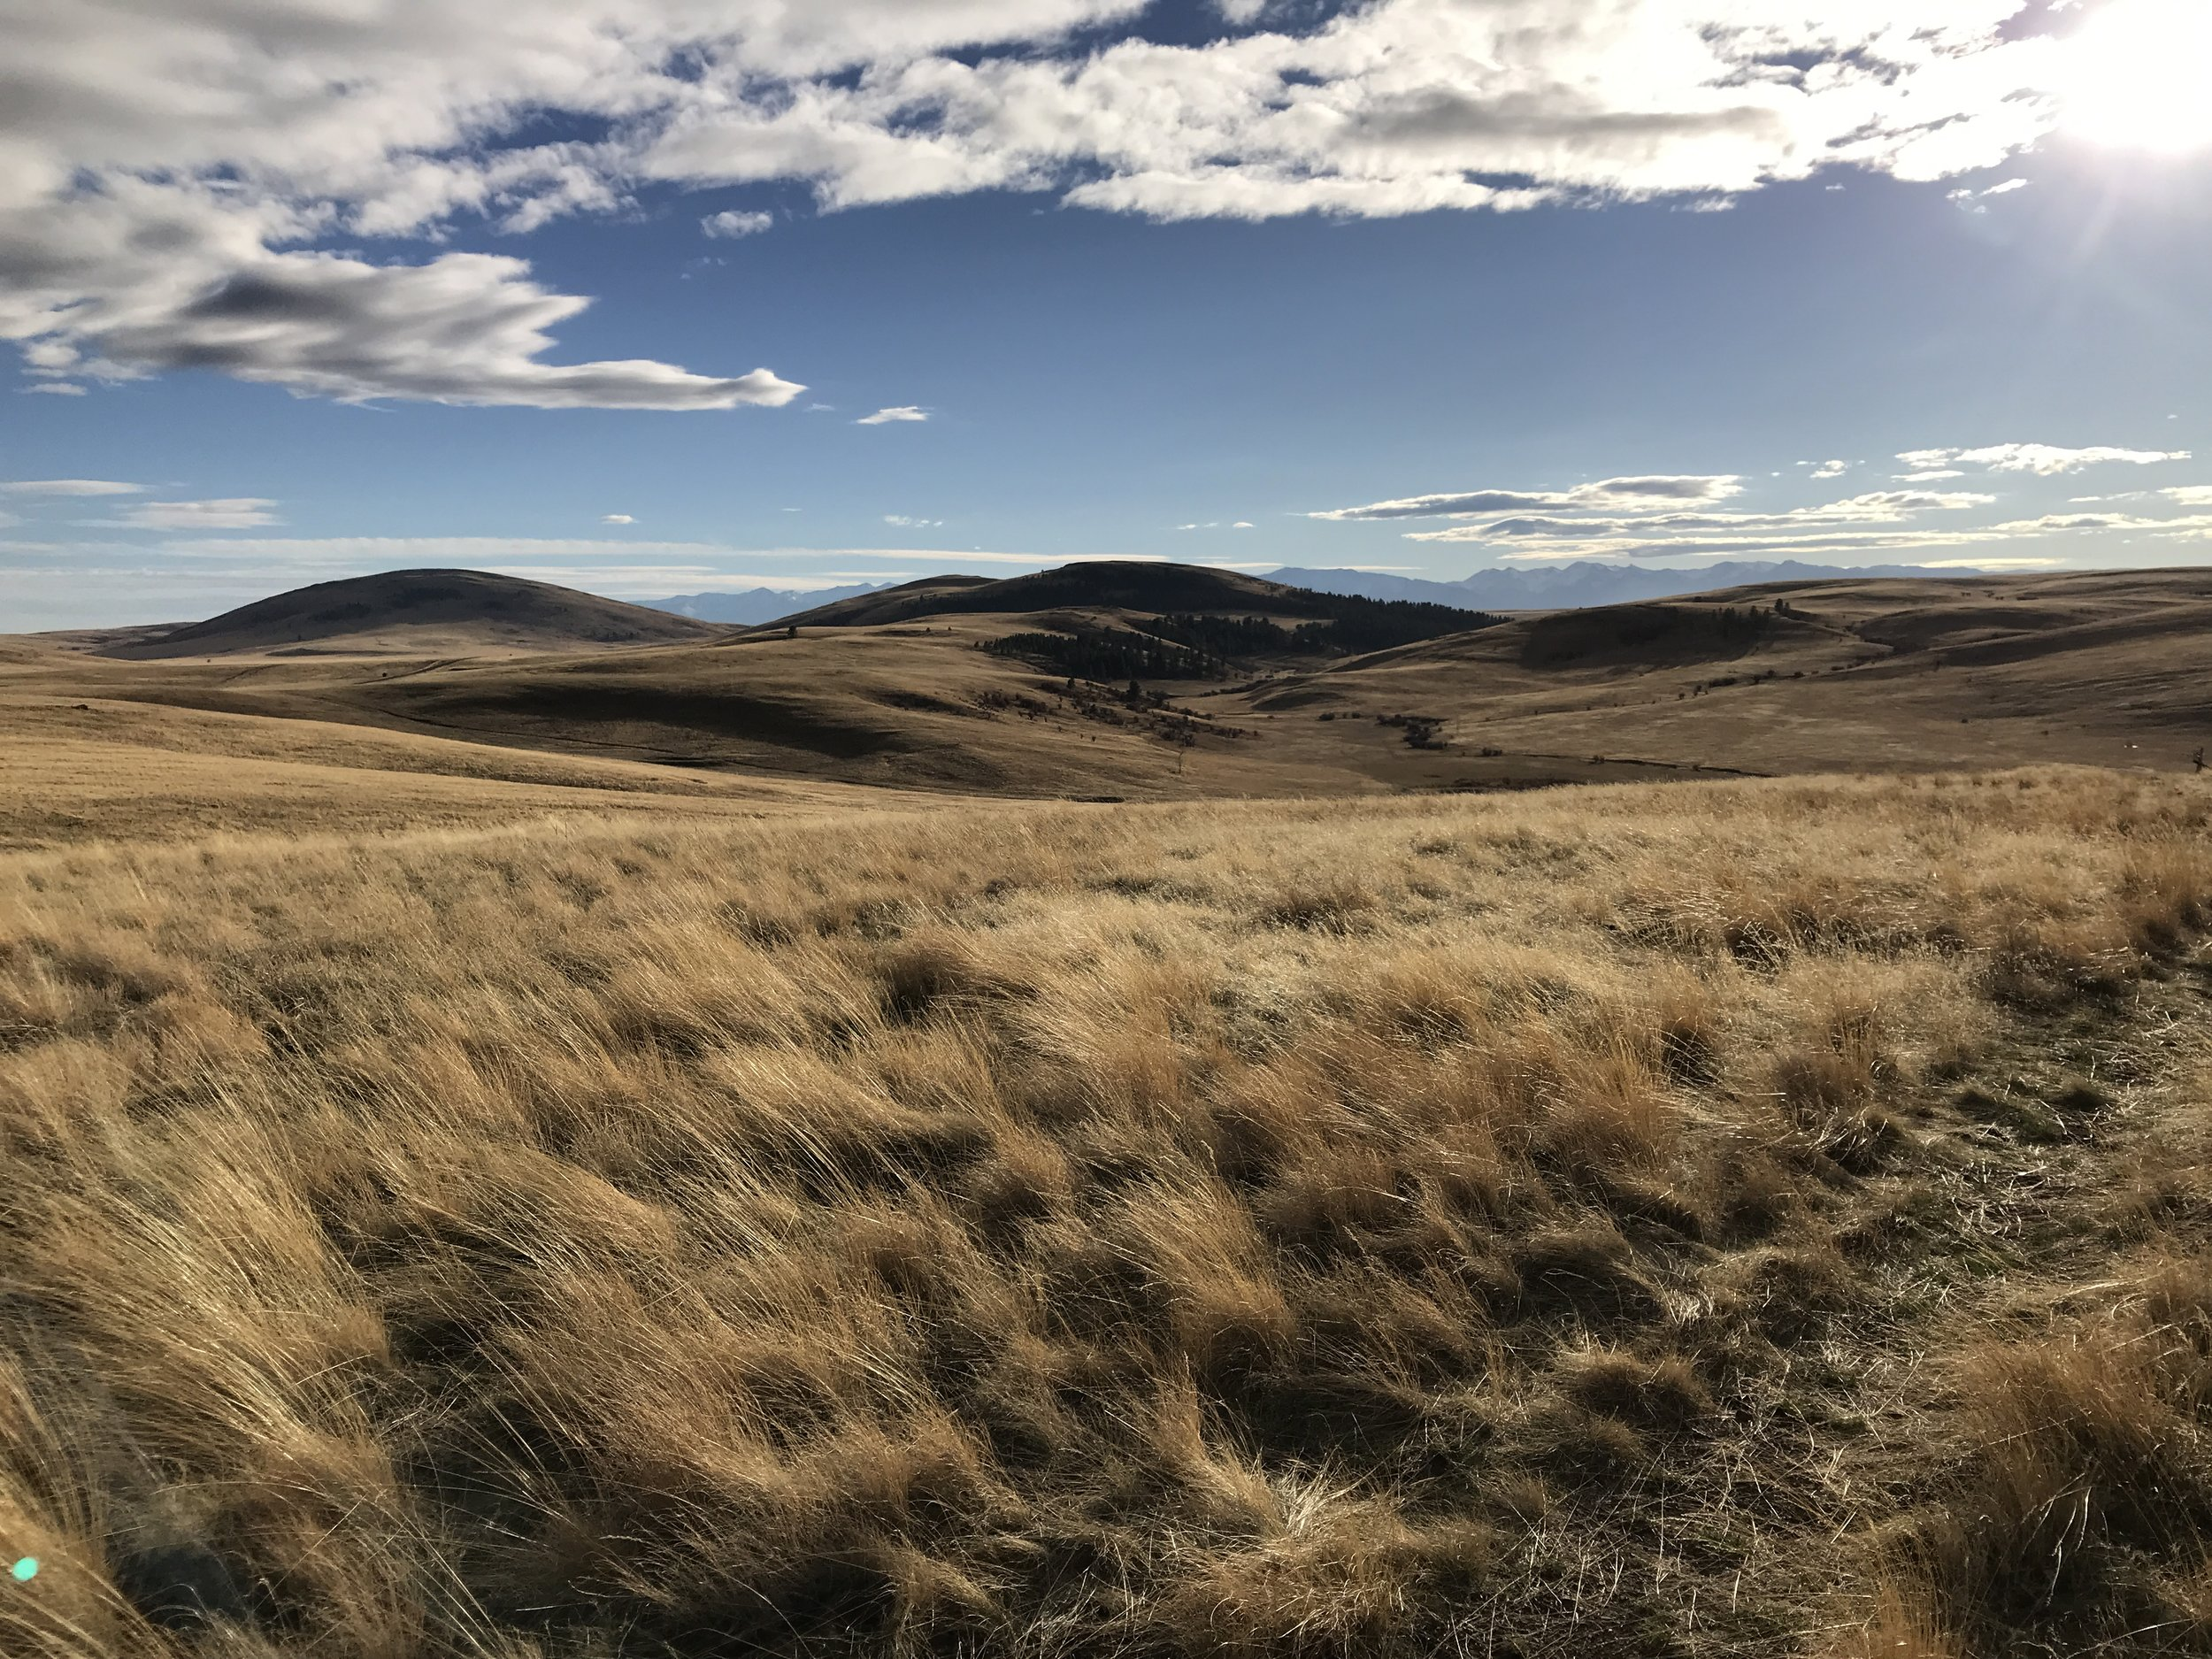 Two of the Findley Buttes that mark the Zumwalt Preserve, and the Wallowa Mountains behind them.